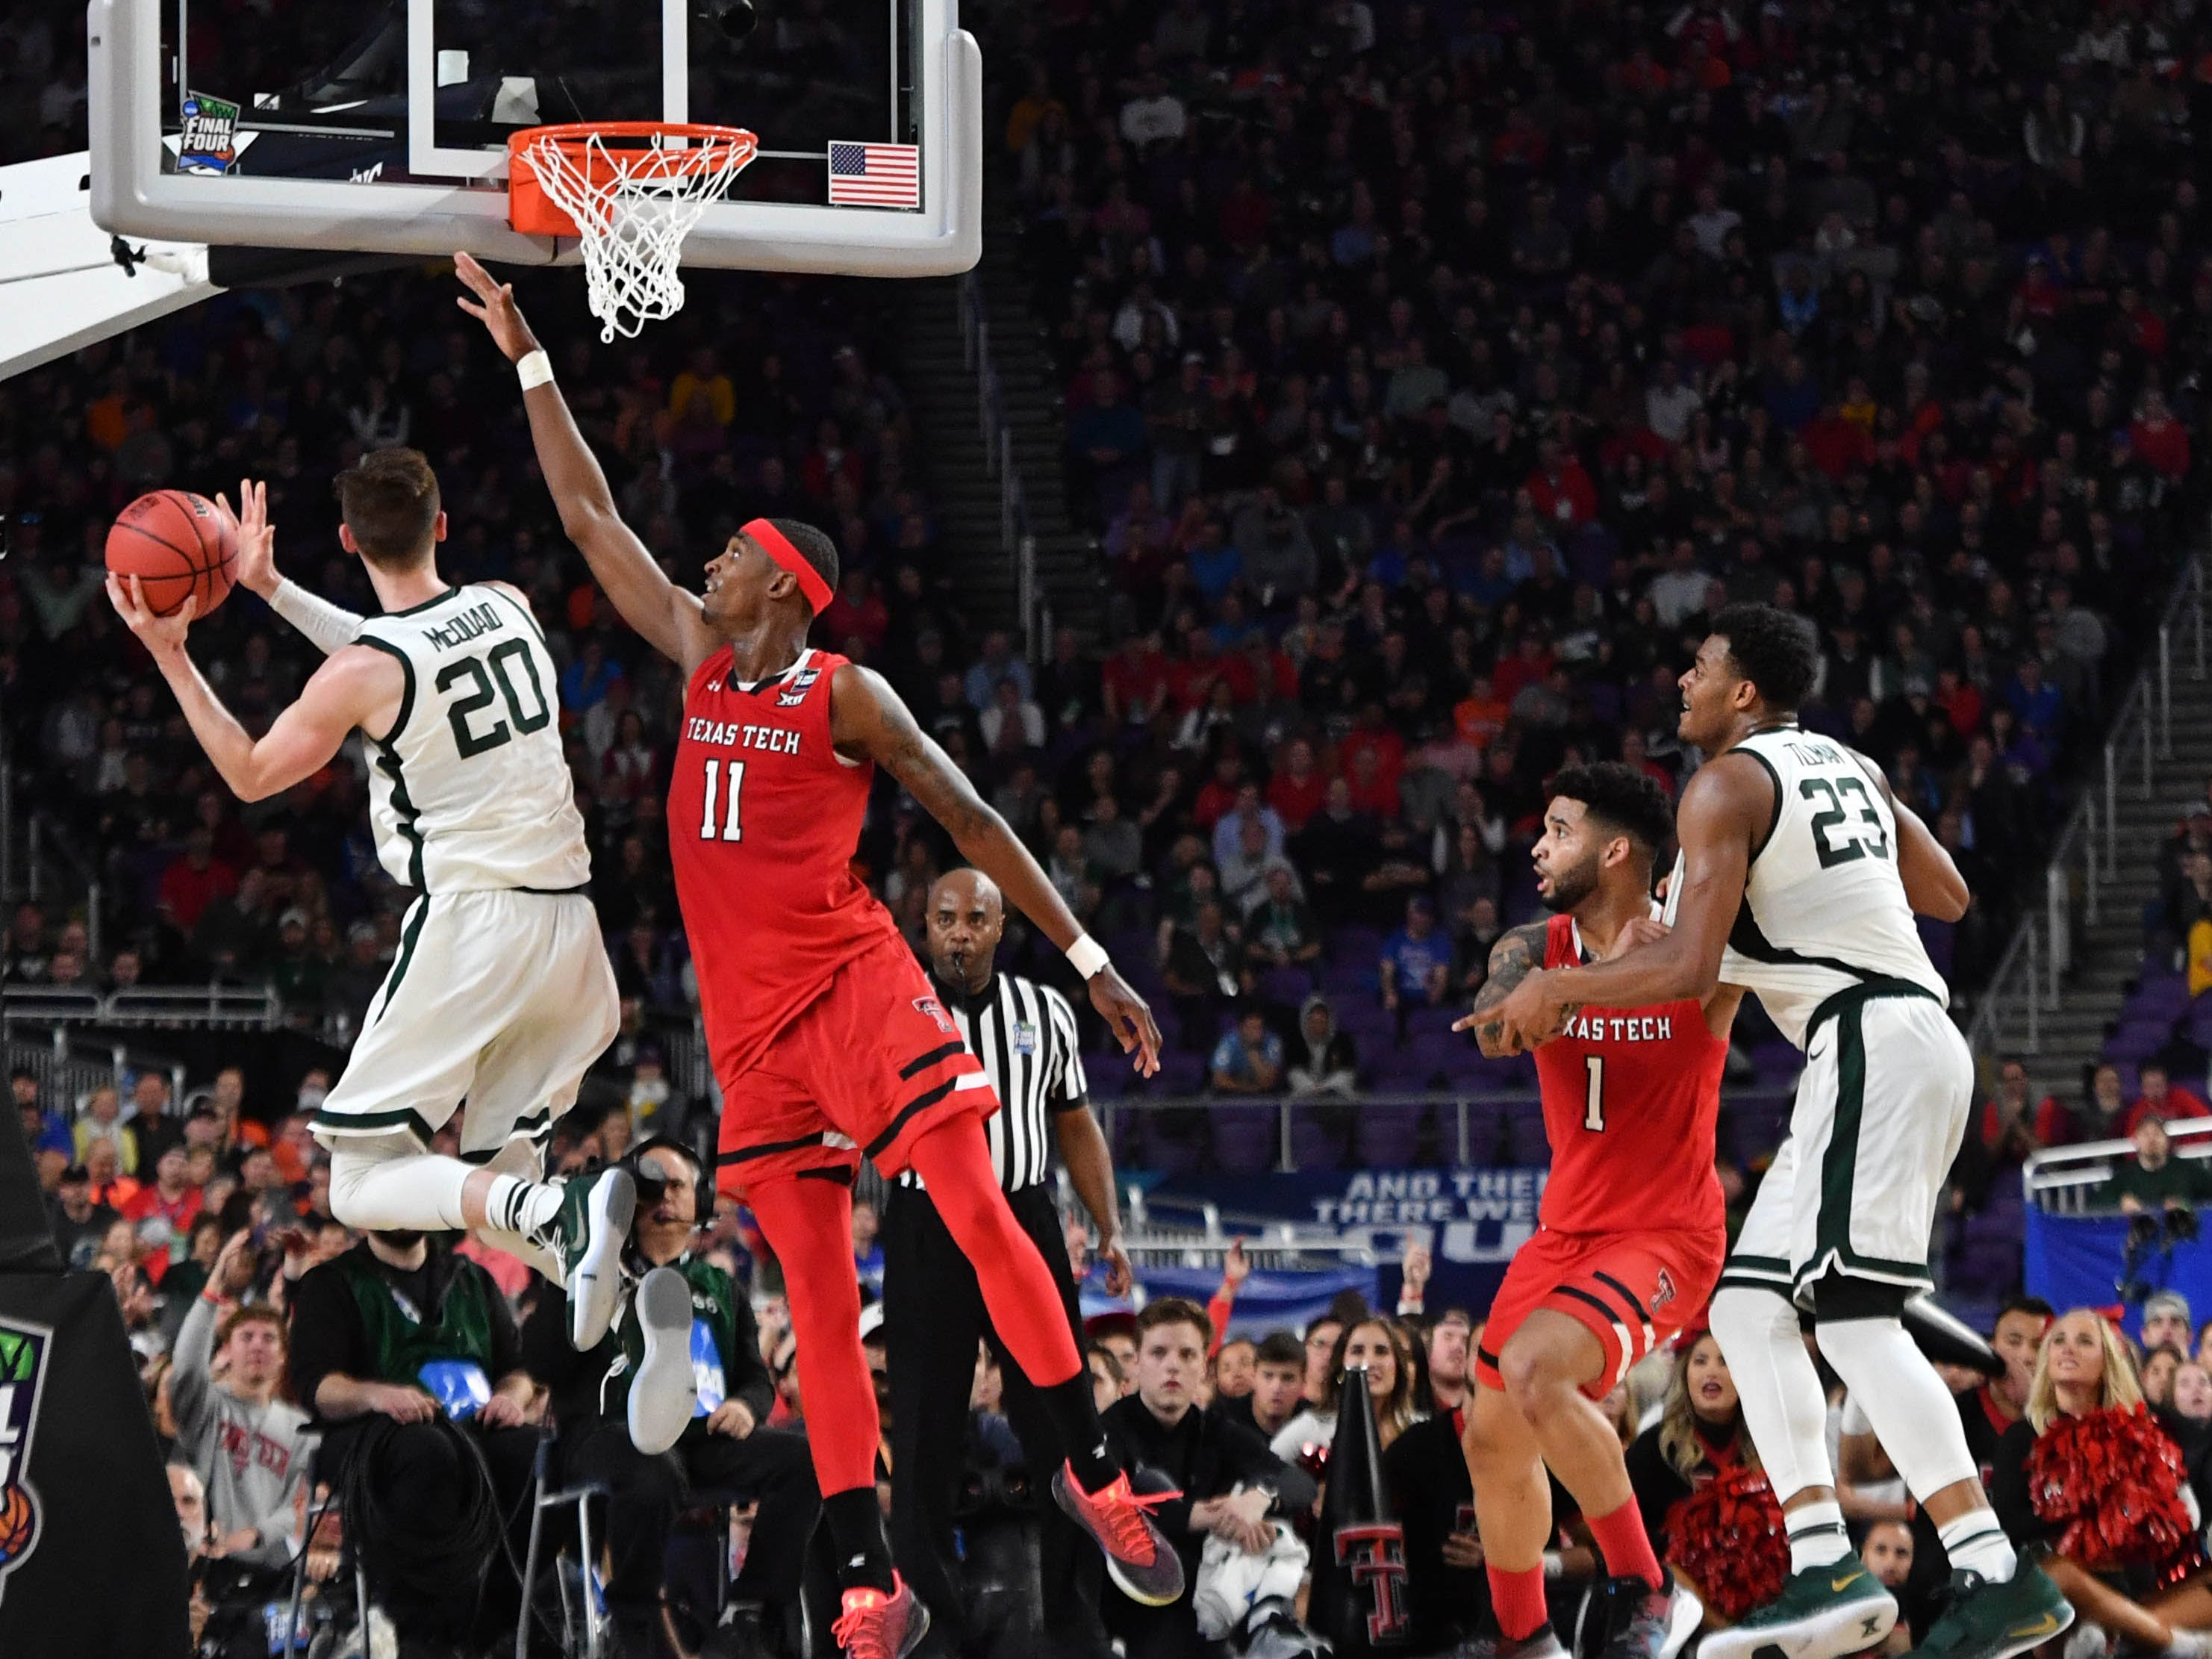 Apr 6, 2019; Minneapolis, MN, USA; Michigan State Spartans guard Matt McQuaid (20) shoots against Texas Tech Red Raiders forward Tariq Owens (11) in the semifinals of the 2019 men's Final Four at US Bank Stadium. Mandatory Credit: Robert Deutsch-USA TODAY Sports